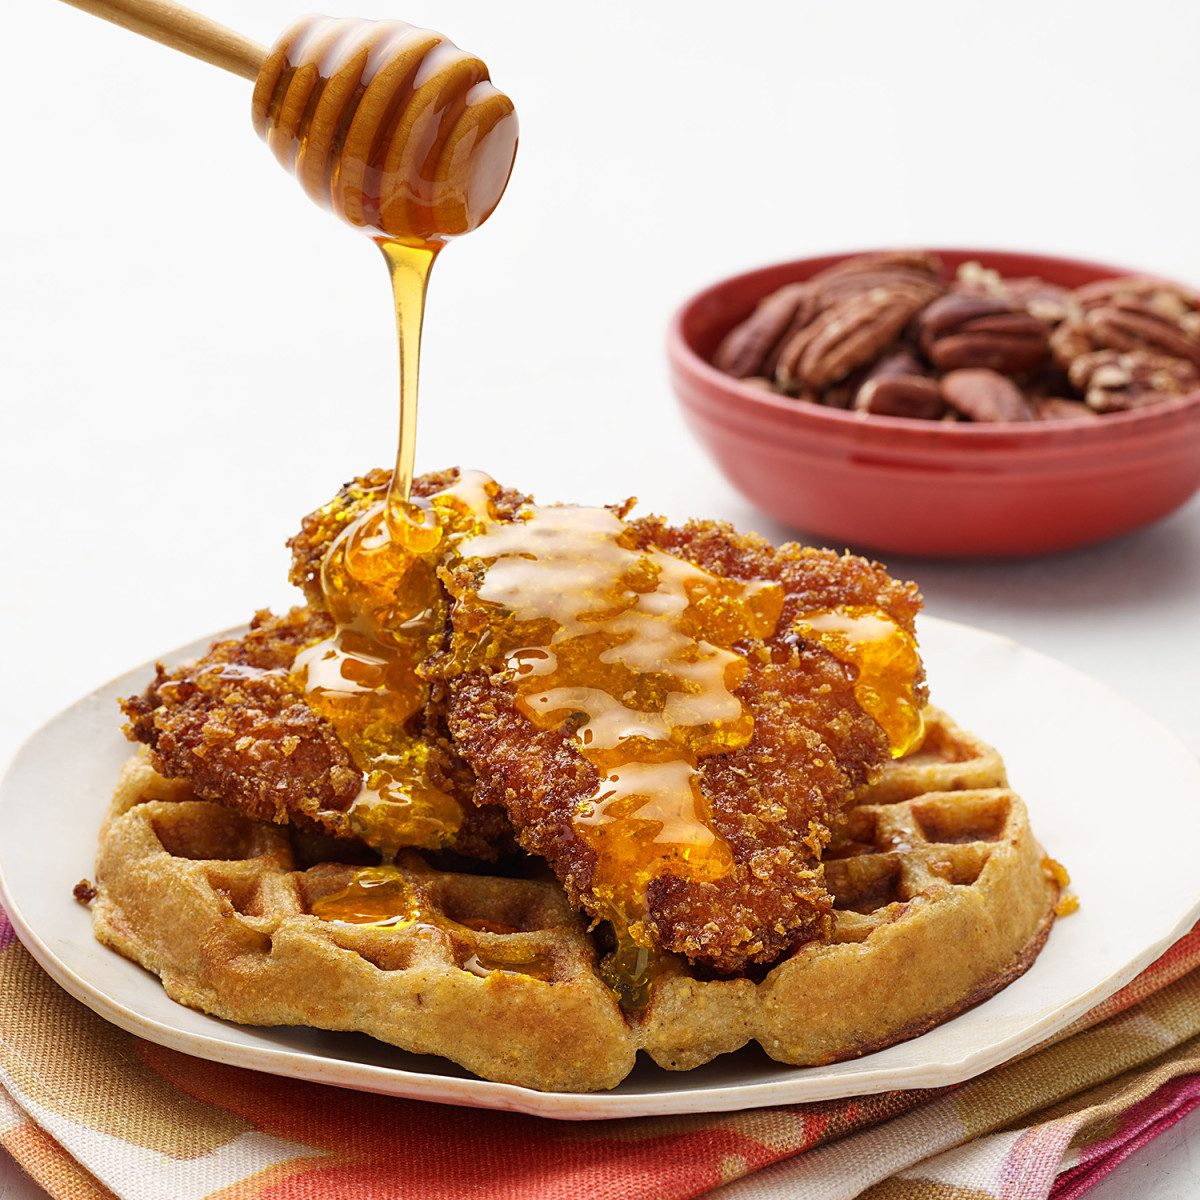 Kfc Chicken And Waffles  Cornflake Fried Chicken & Waffles with Pecans Rachael